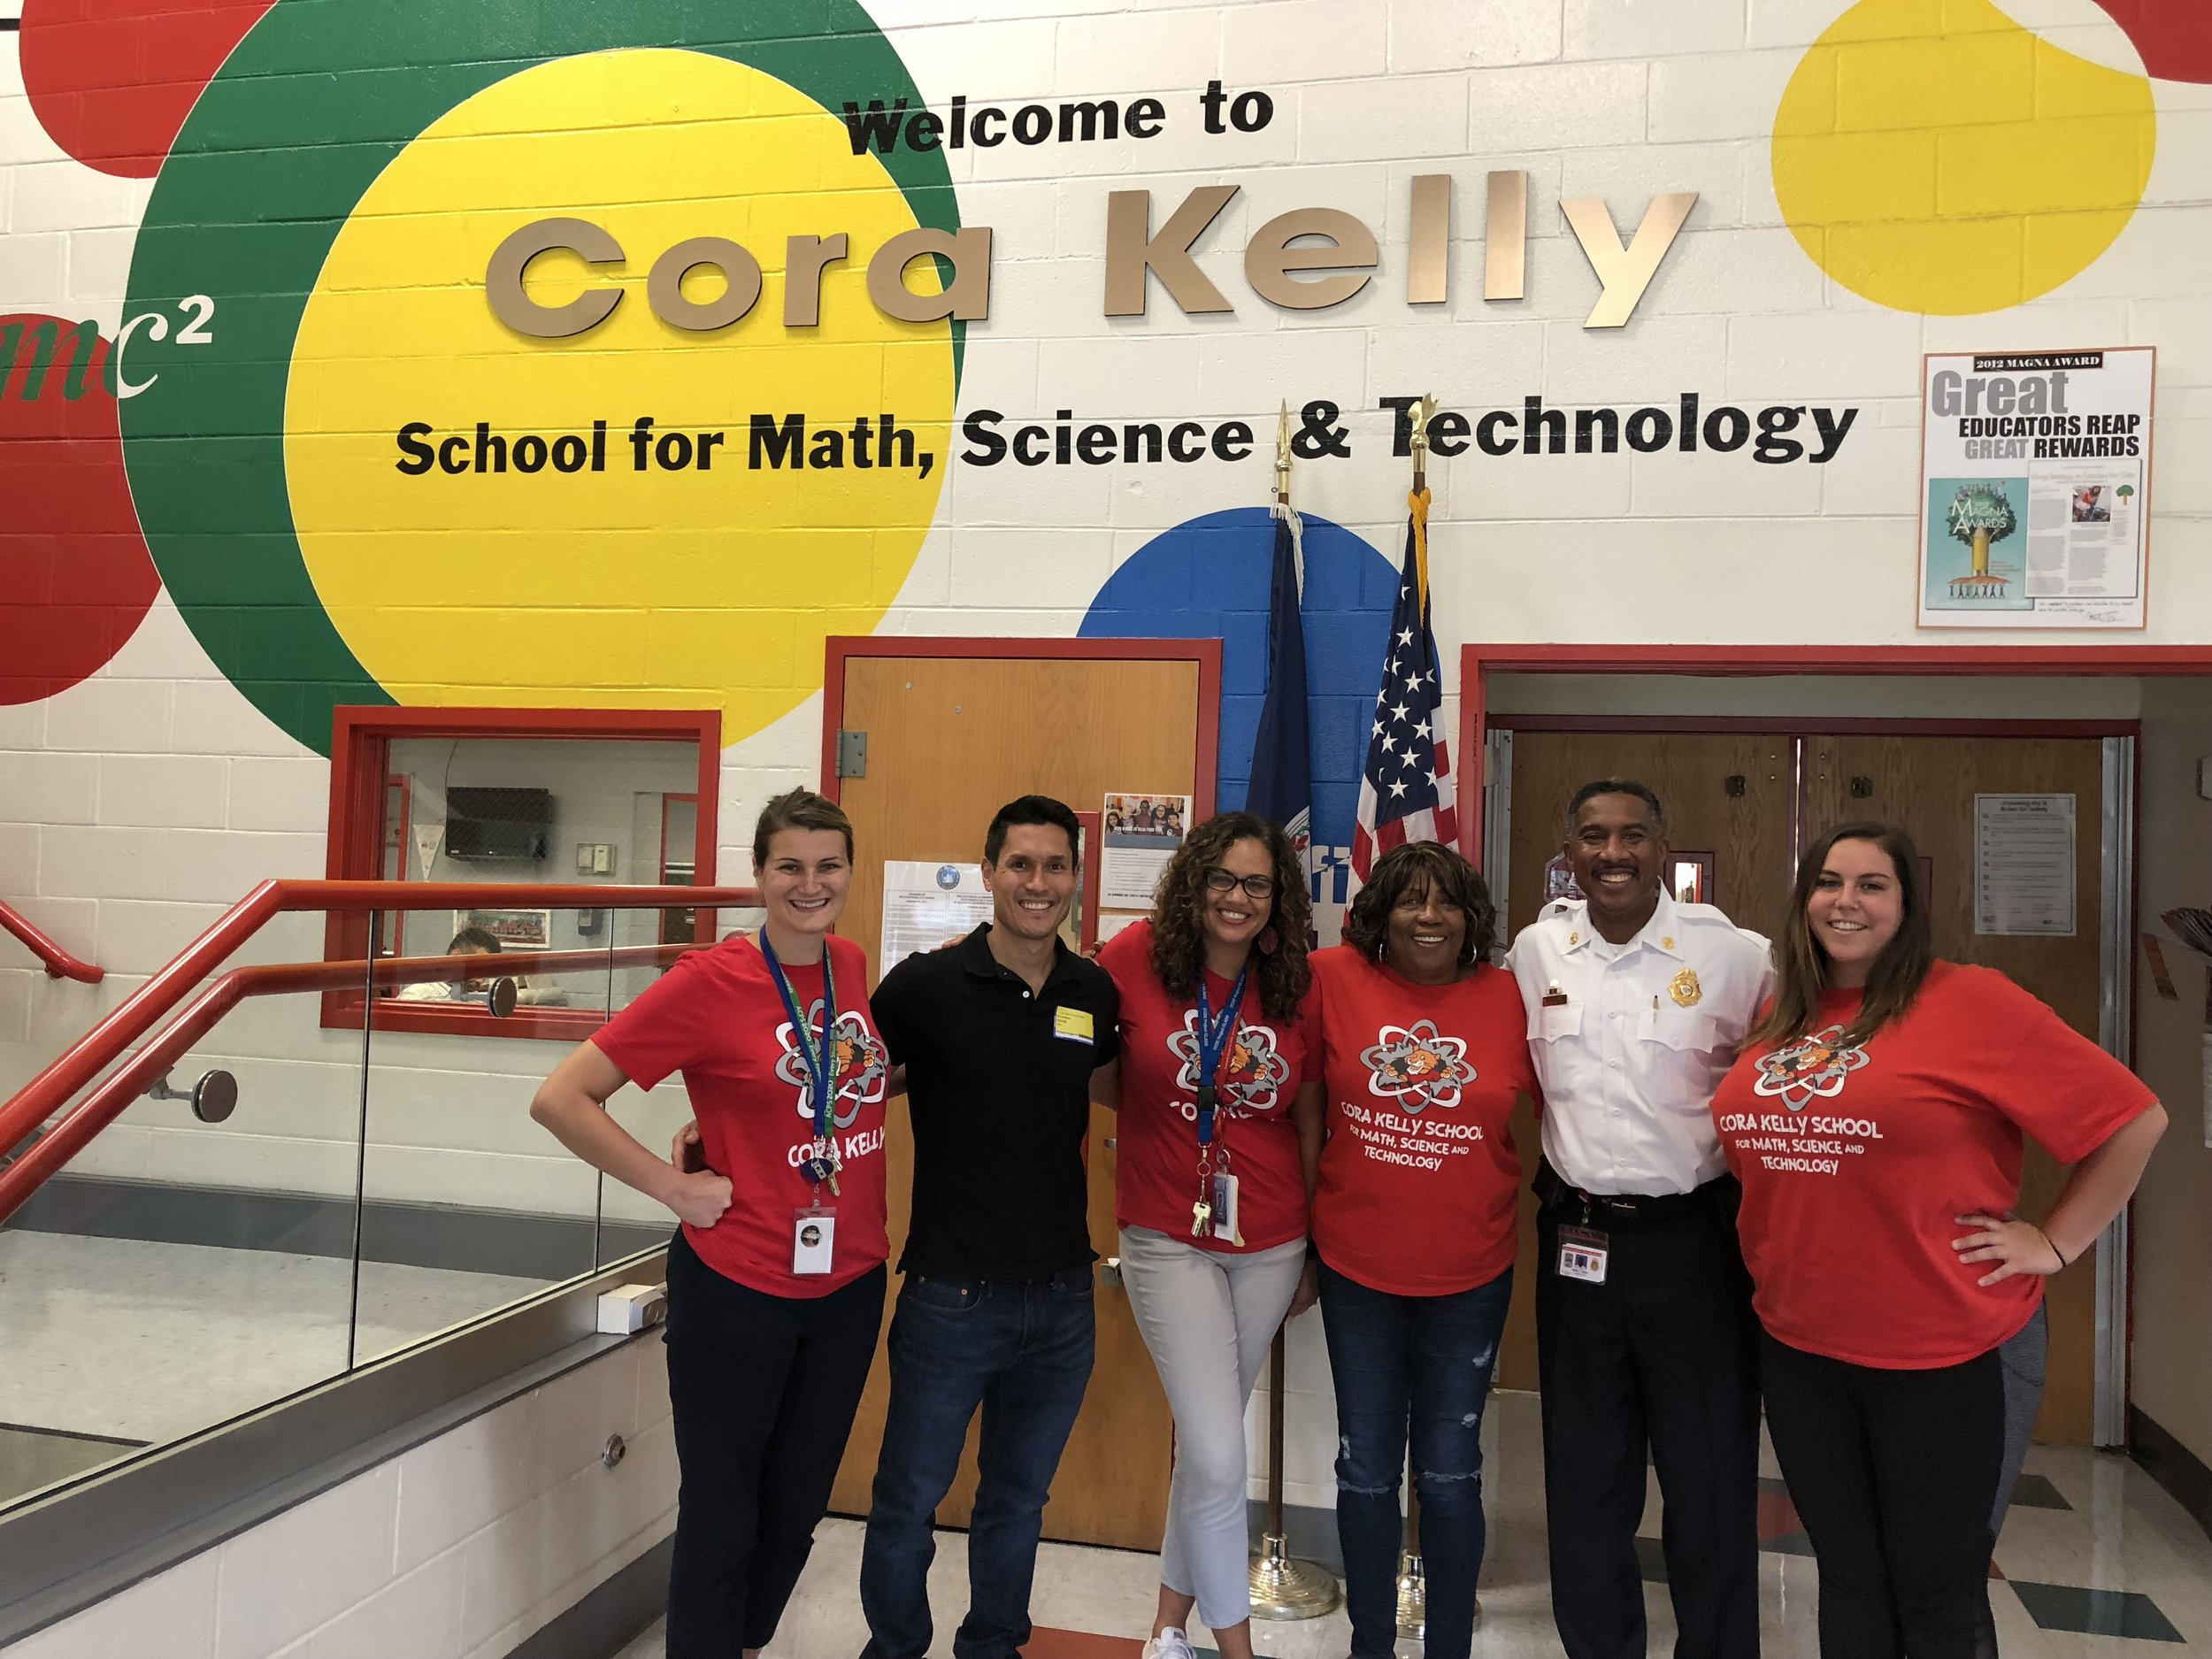 (Left to Right) Mrs. Holthaus (AP), Ken Savittiere (K12AF & FCFRD), Mrs. Crews-West (P), Mrs. Hines, Chief Willie Bailey (FCFRD & K12AF), Ms. Sandoval (PE)  This is the same school that Chief Bailey and his kids went to when they were in elementary school. What a wonderful sight to see the connection and history behind giving back to your community.